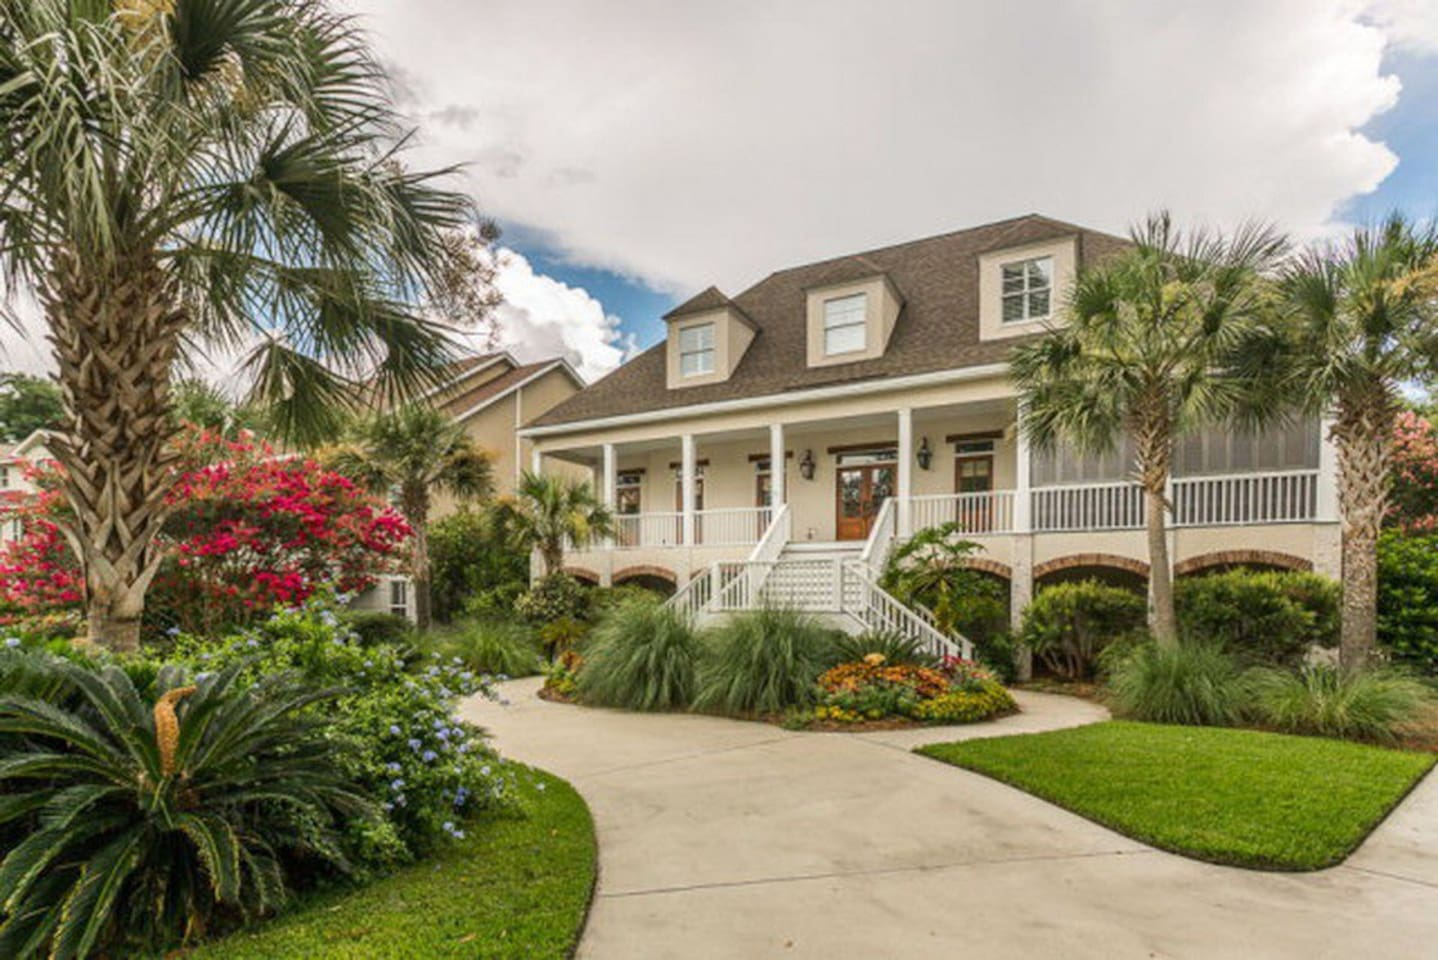 Family home with 5 bedrooms and 4 full bathrooms,  screened in patio, ping pong, darts, outdoor shower, 2.5 miles from beach.  Home does not have an elevator so be ready for stairs.  Living space is on the second and 3rd floors.